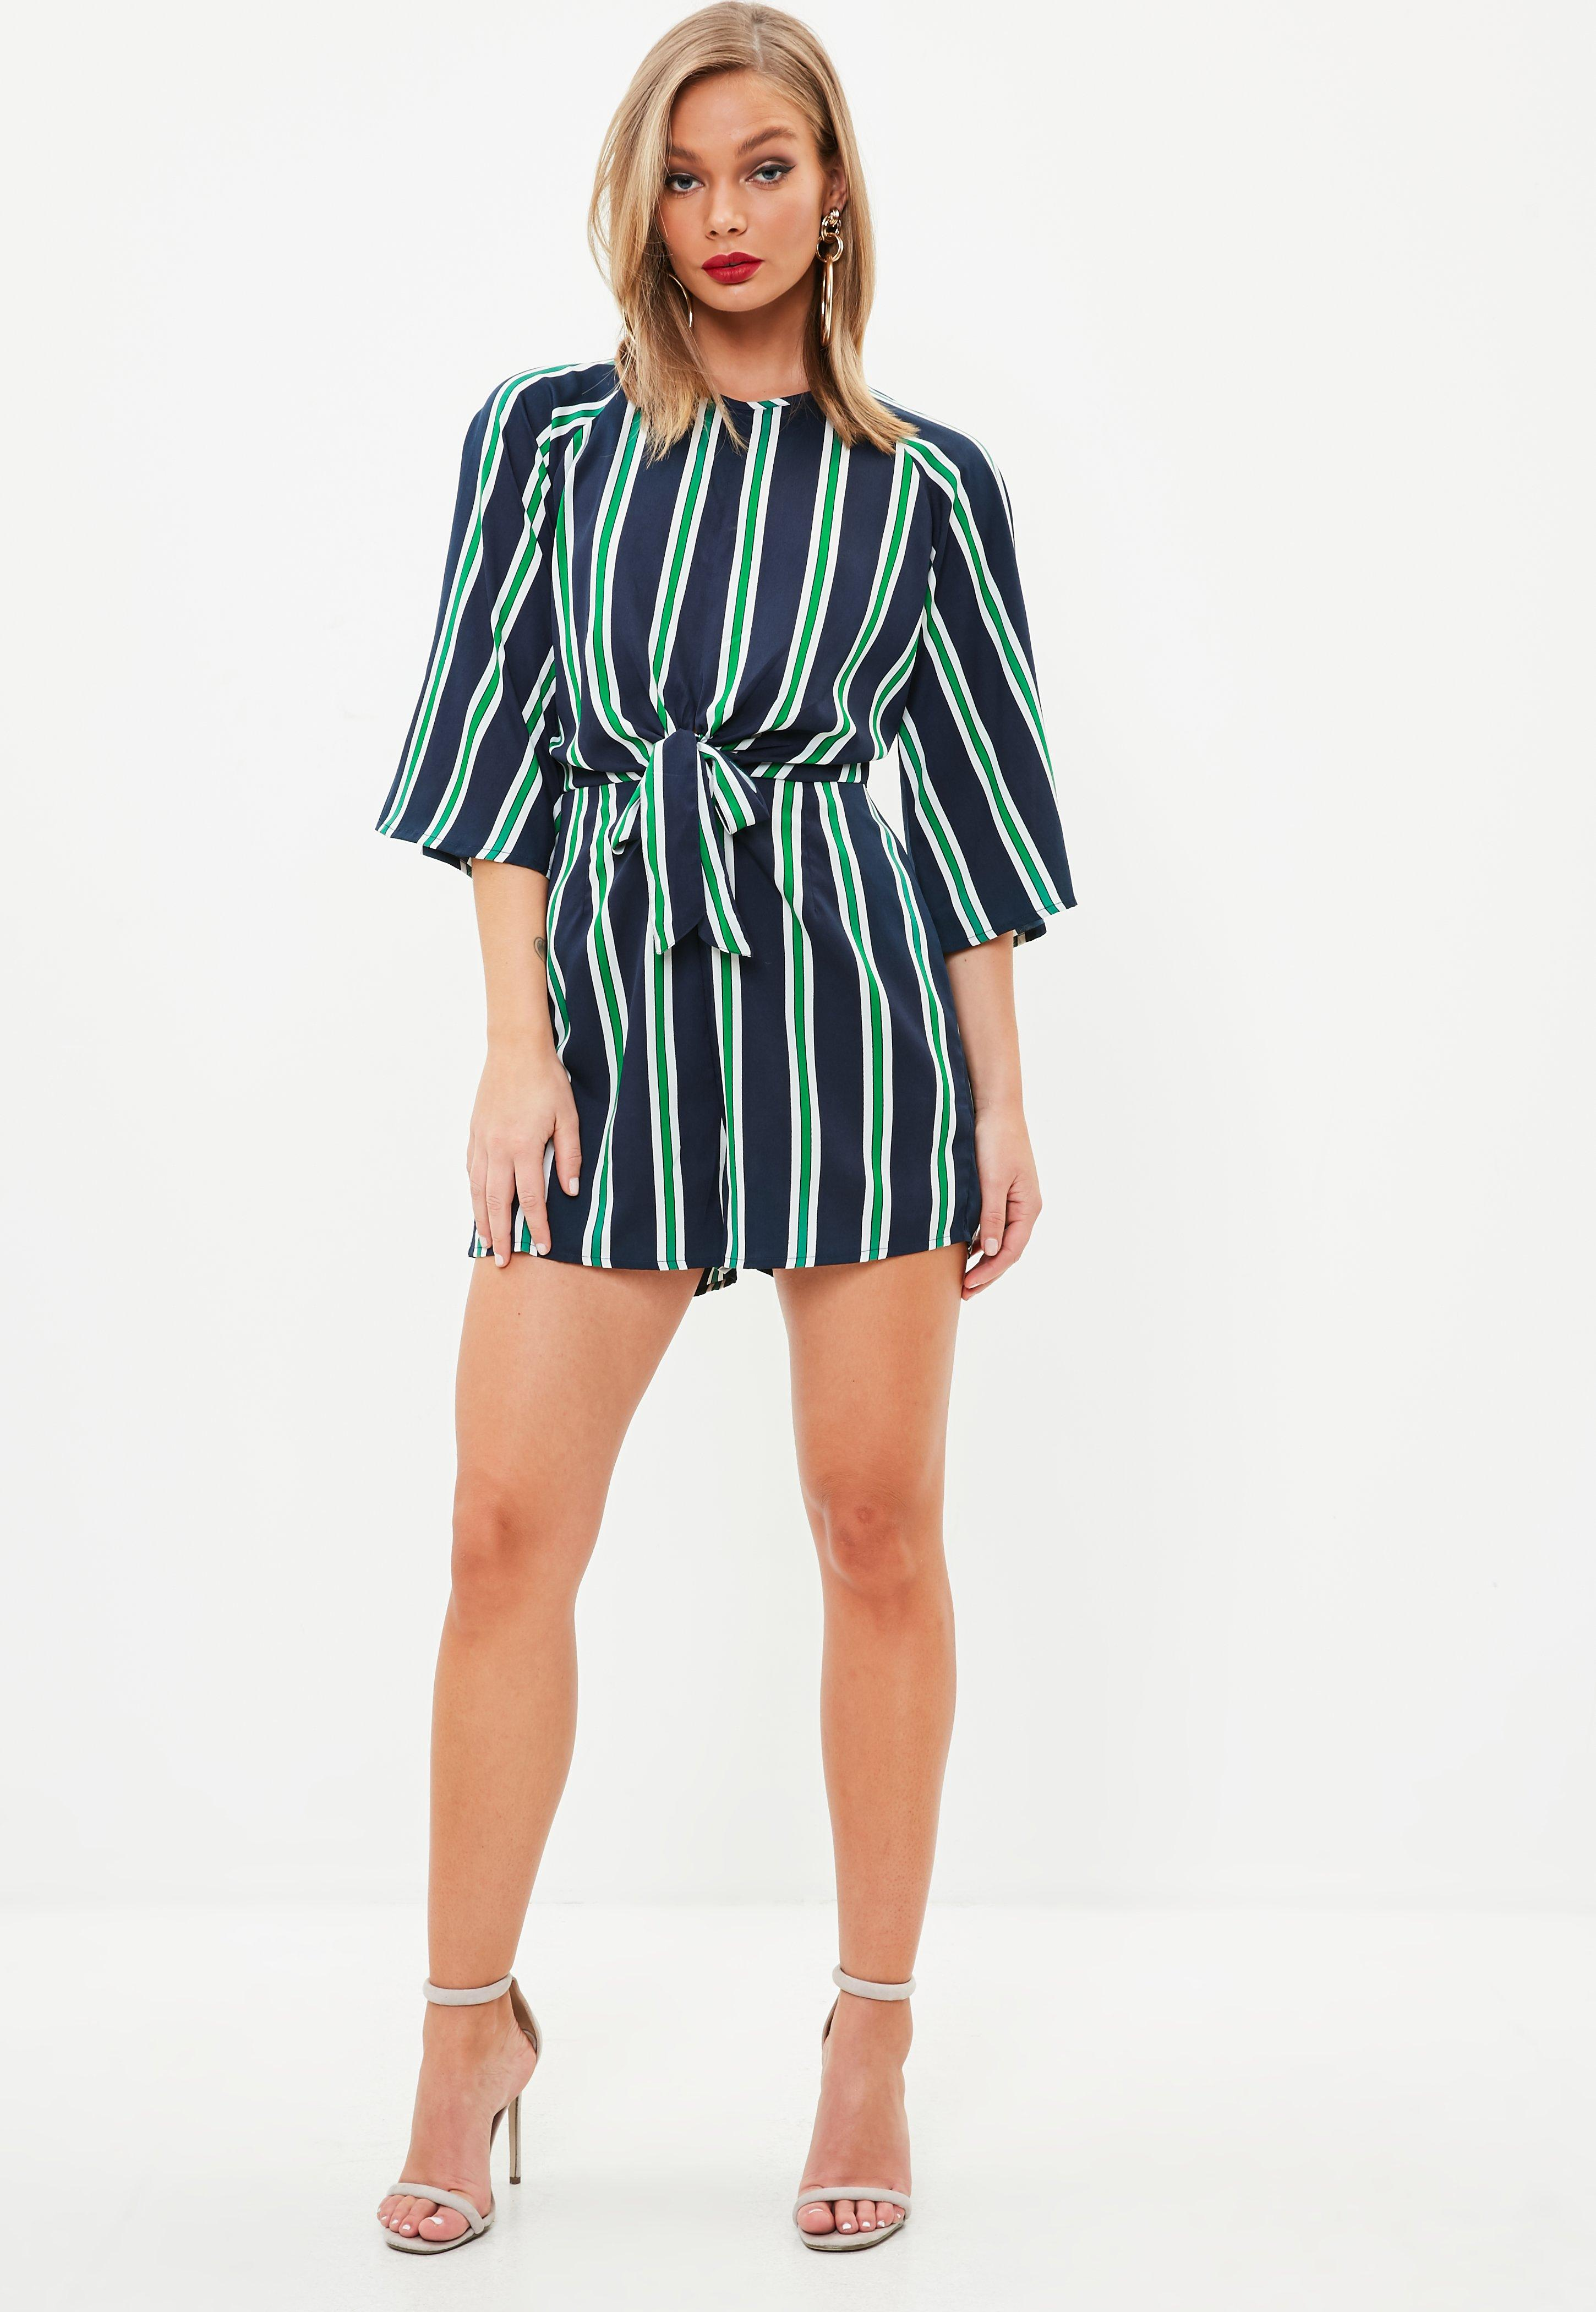 Missguided Stripe Tie Front Playsuit Sale Nicekicks Cheap Shop Offer Cheap Sale Low Shipping Fee tfbr0z1Gpz